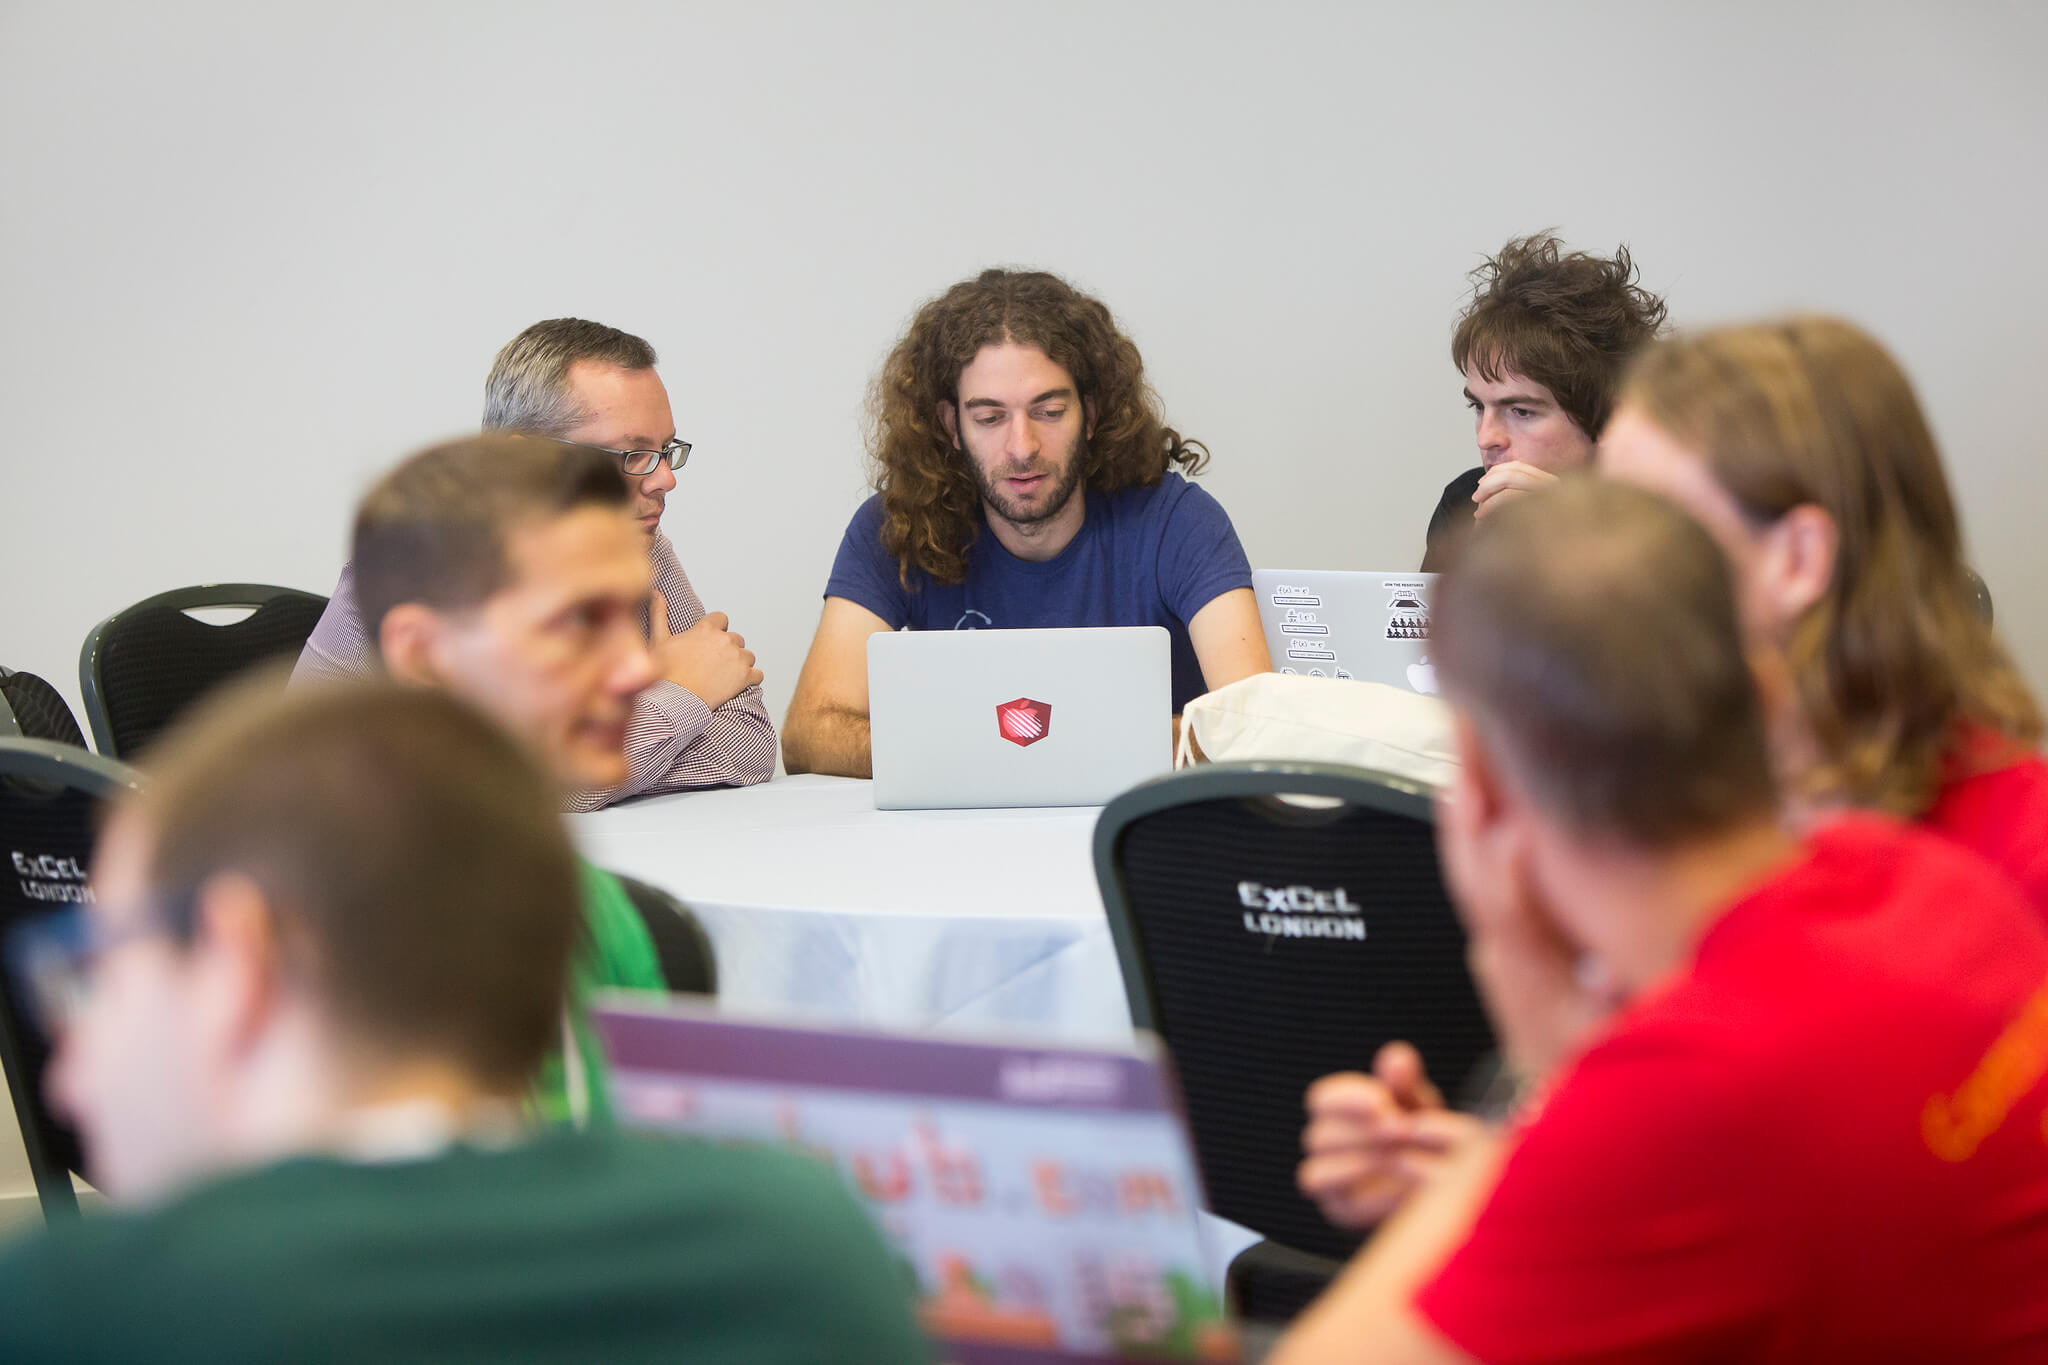 Angular 2 conference activities